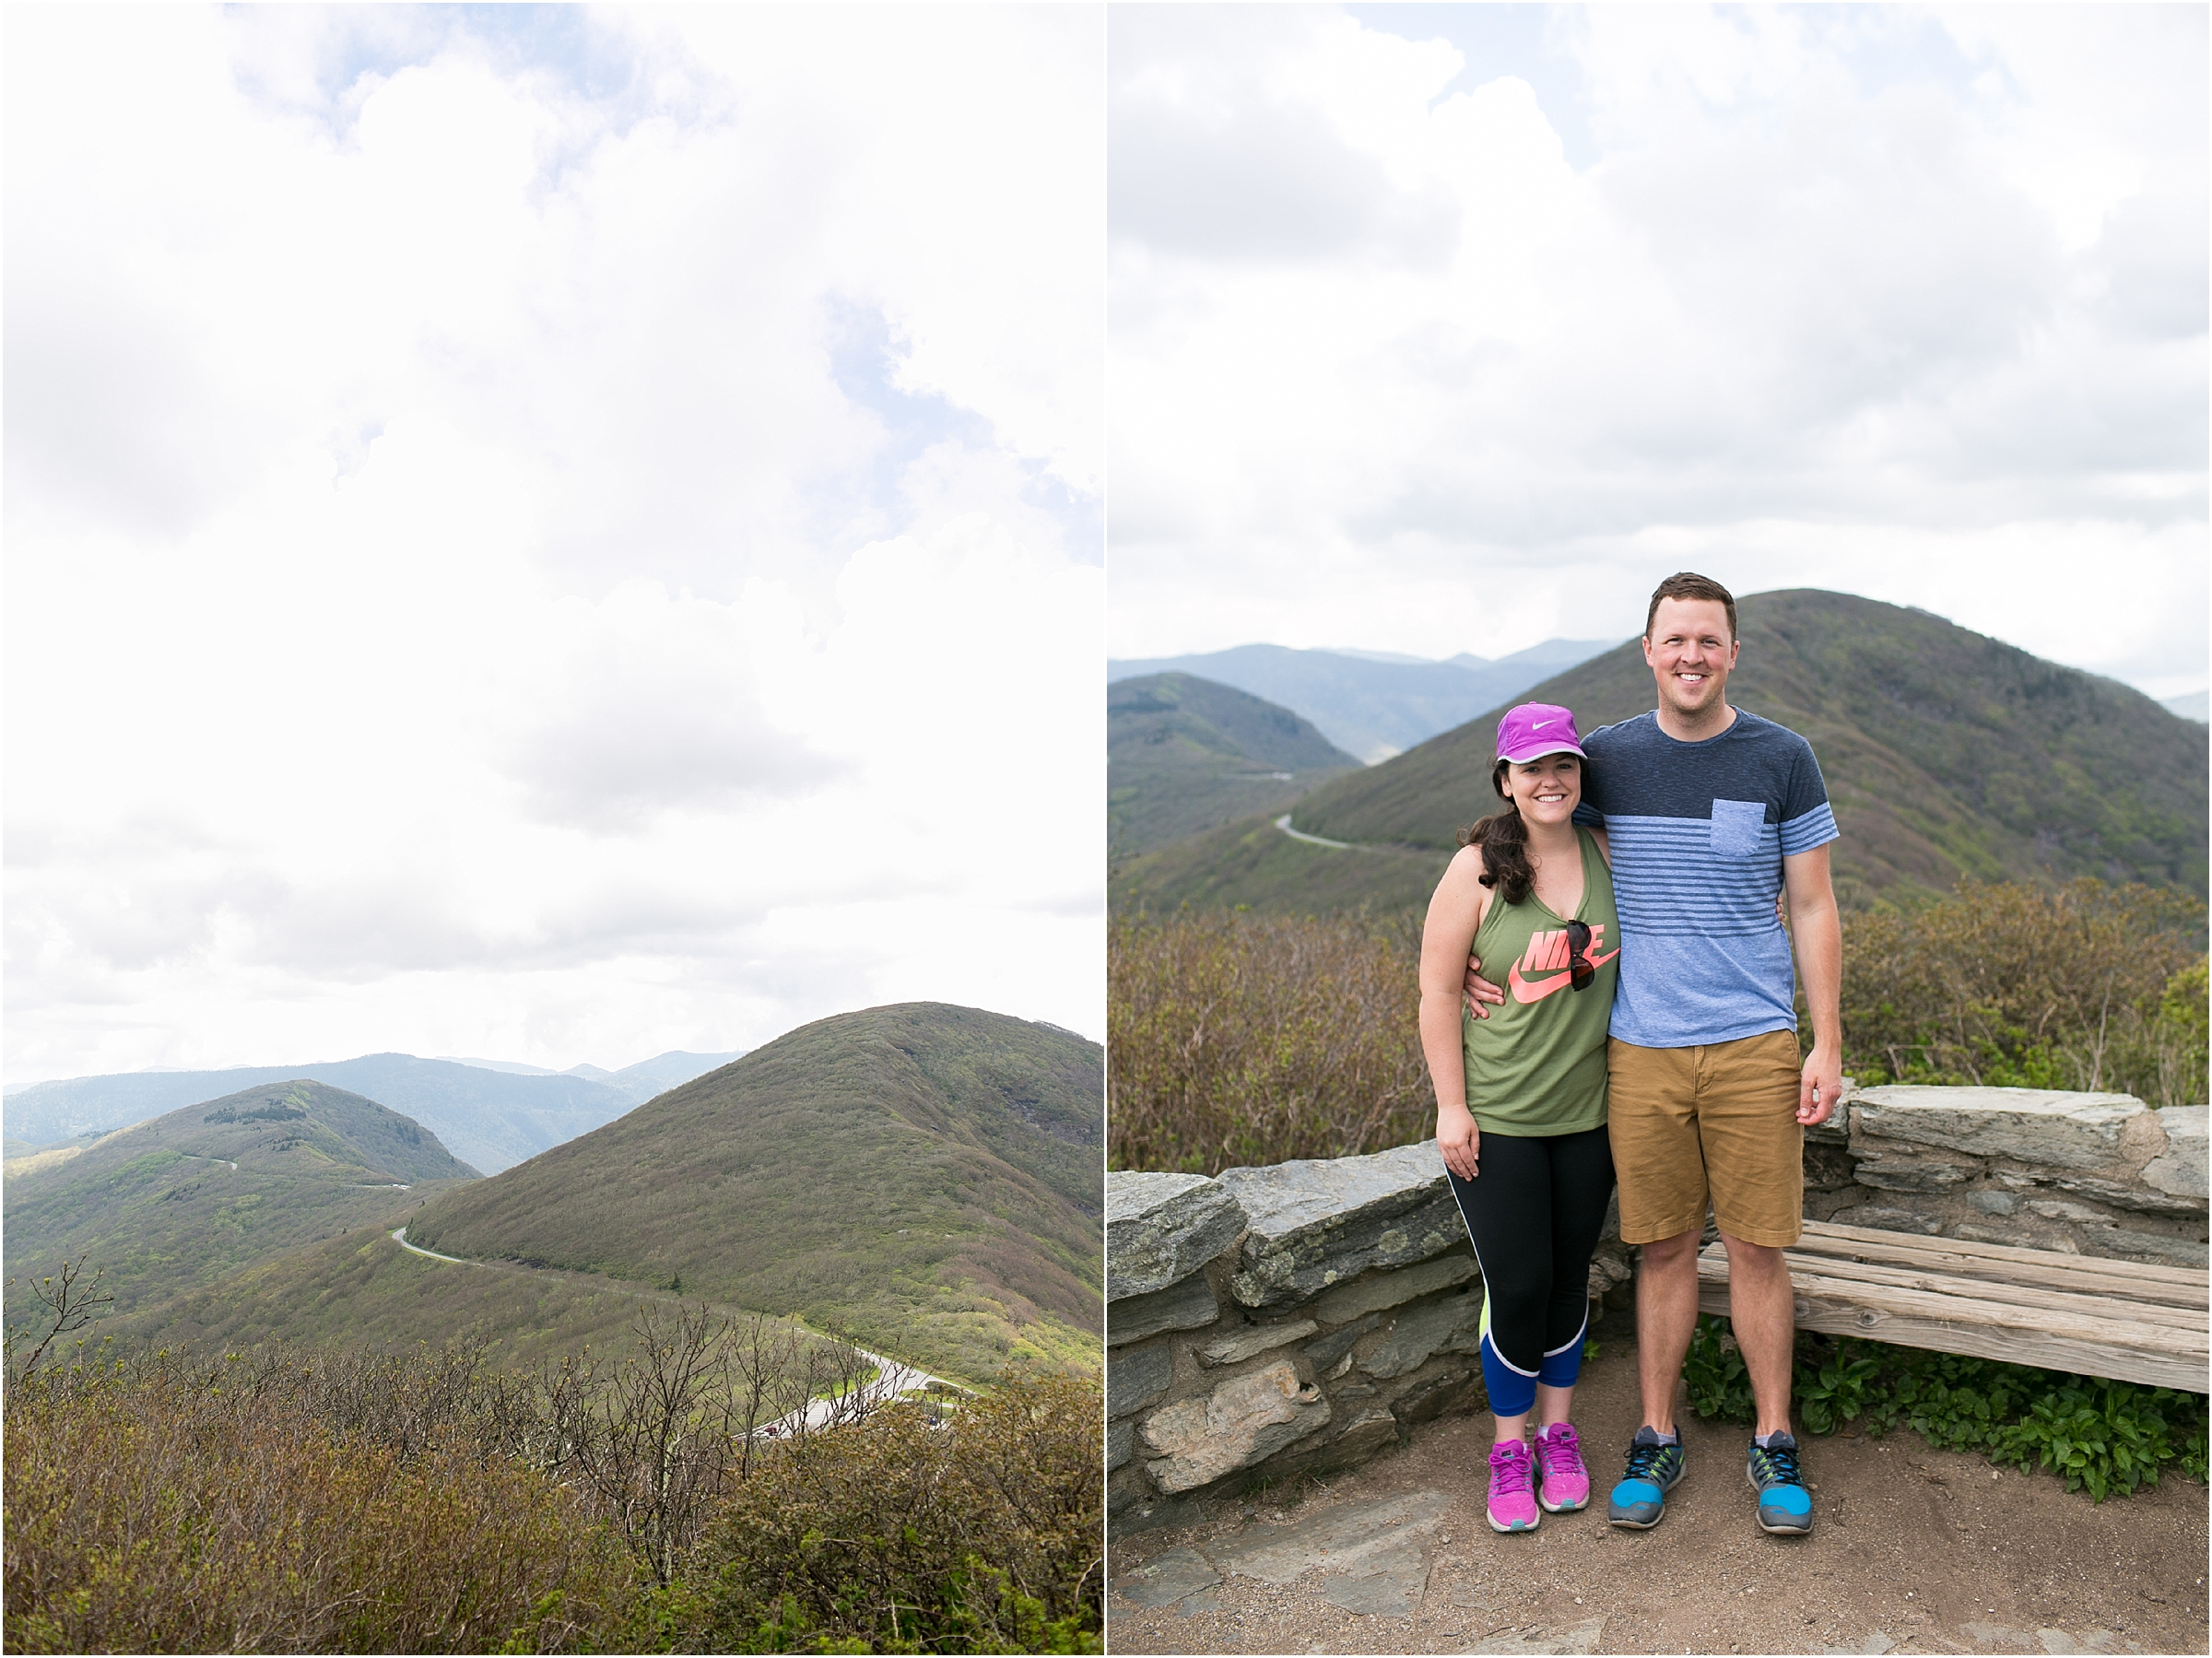 asheville north carolina honeymoon wedding photographer craggy gardens hike craggy pinnacle trail